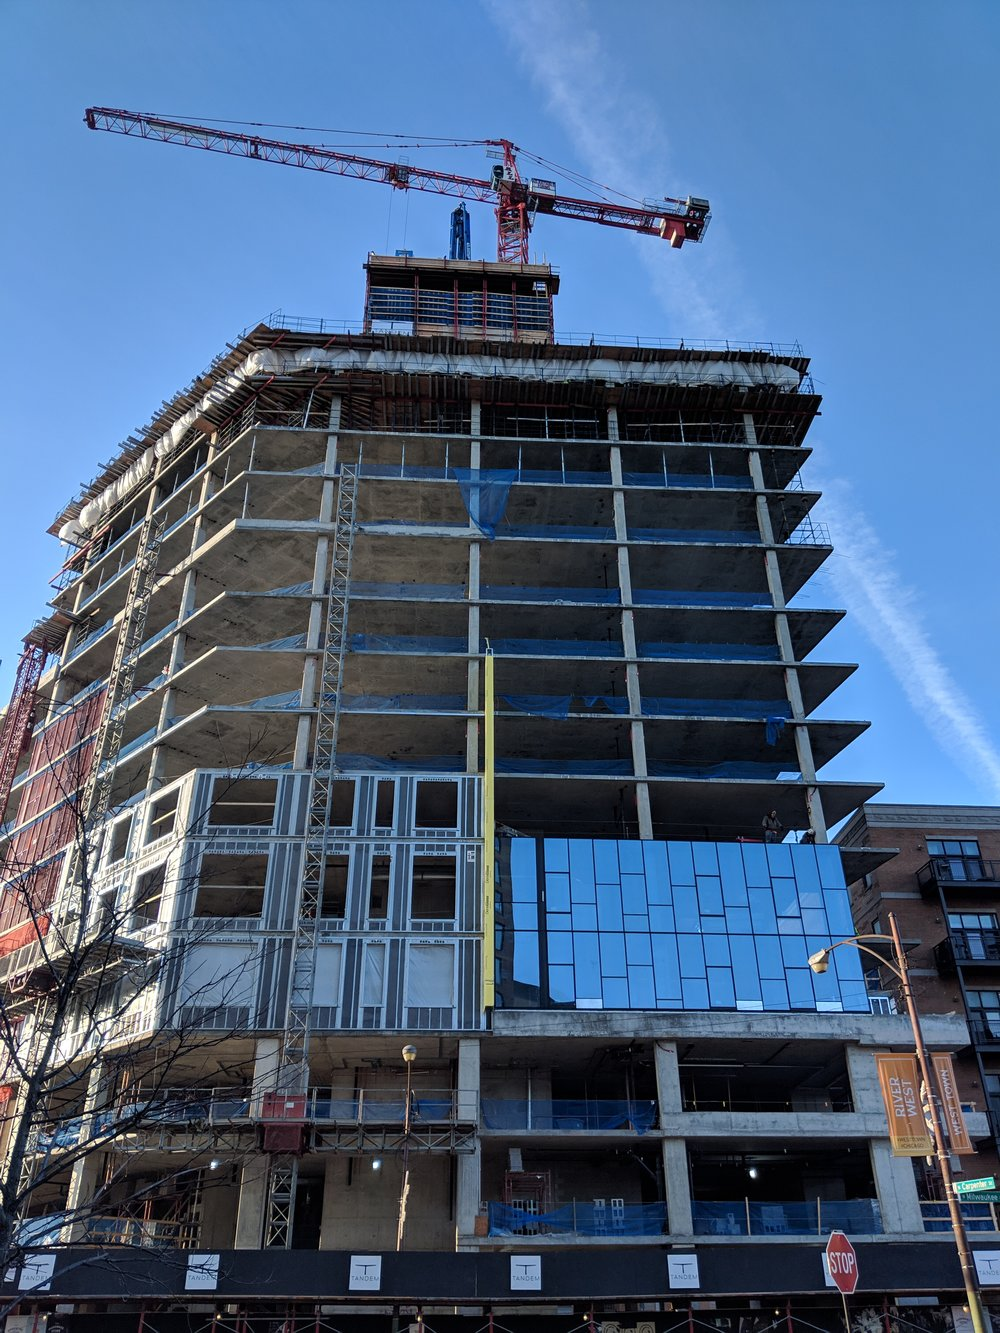 Cladding going up (taken 12/11/18 by George Guarino)